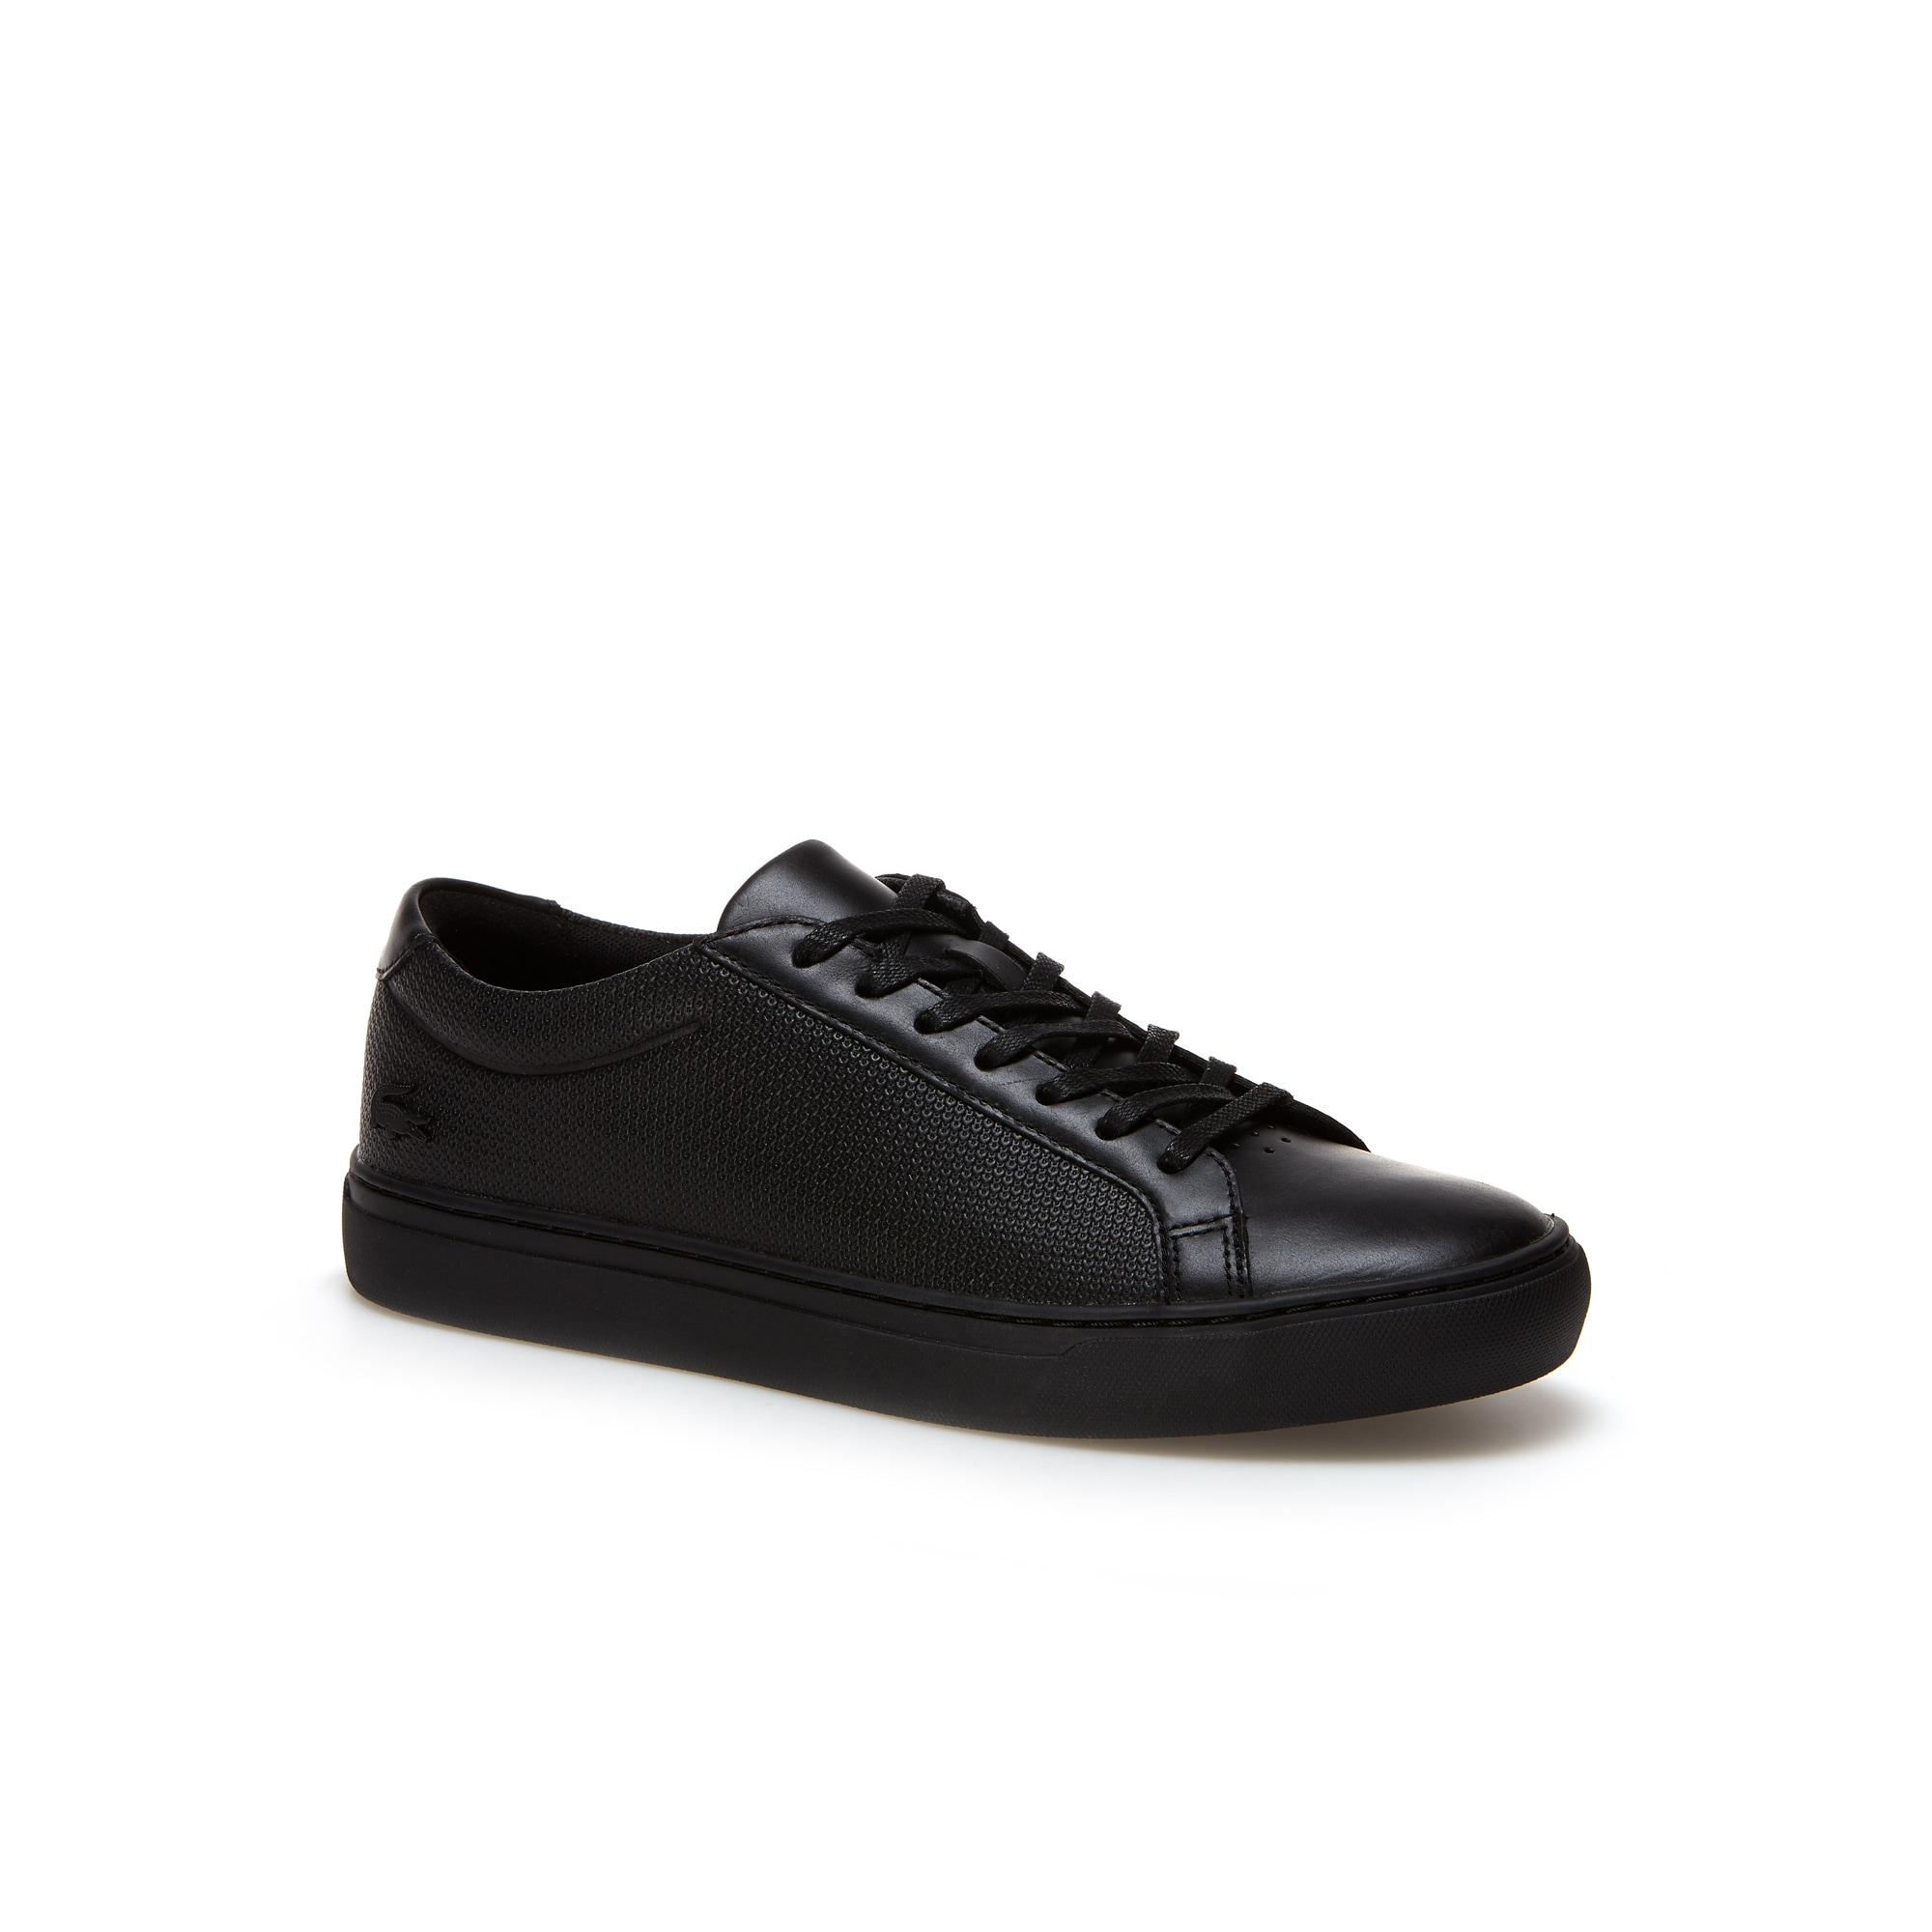 L.12.12 herensneakers van leer